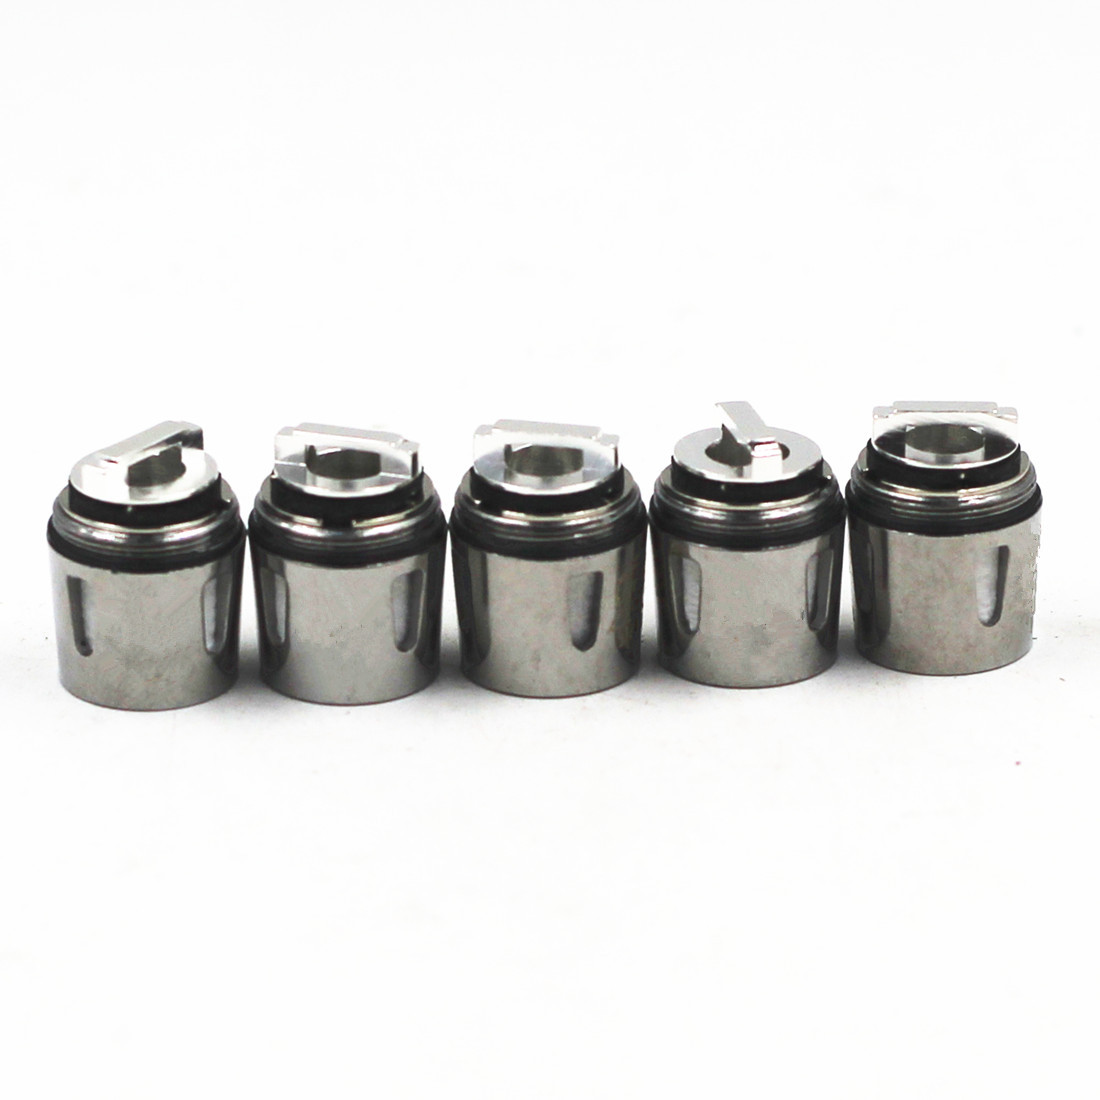 5pcs V8 Baby Q2 0.4ohm Replacement Coil Head For V8 Baby Sub-ohm Atomizer Tank